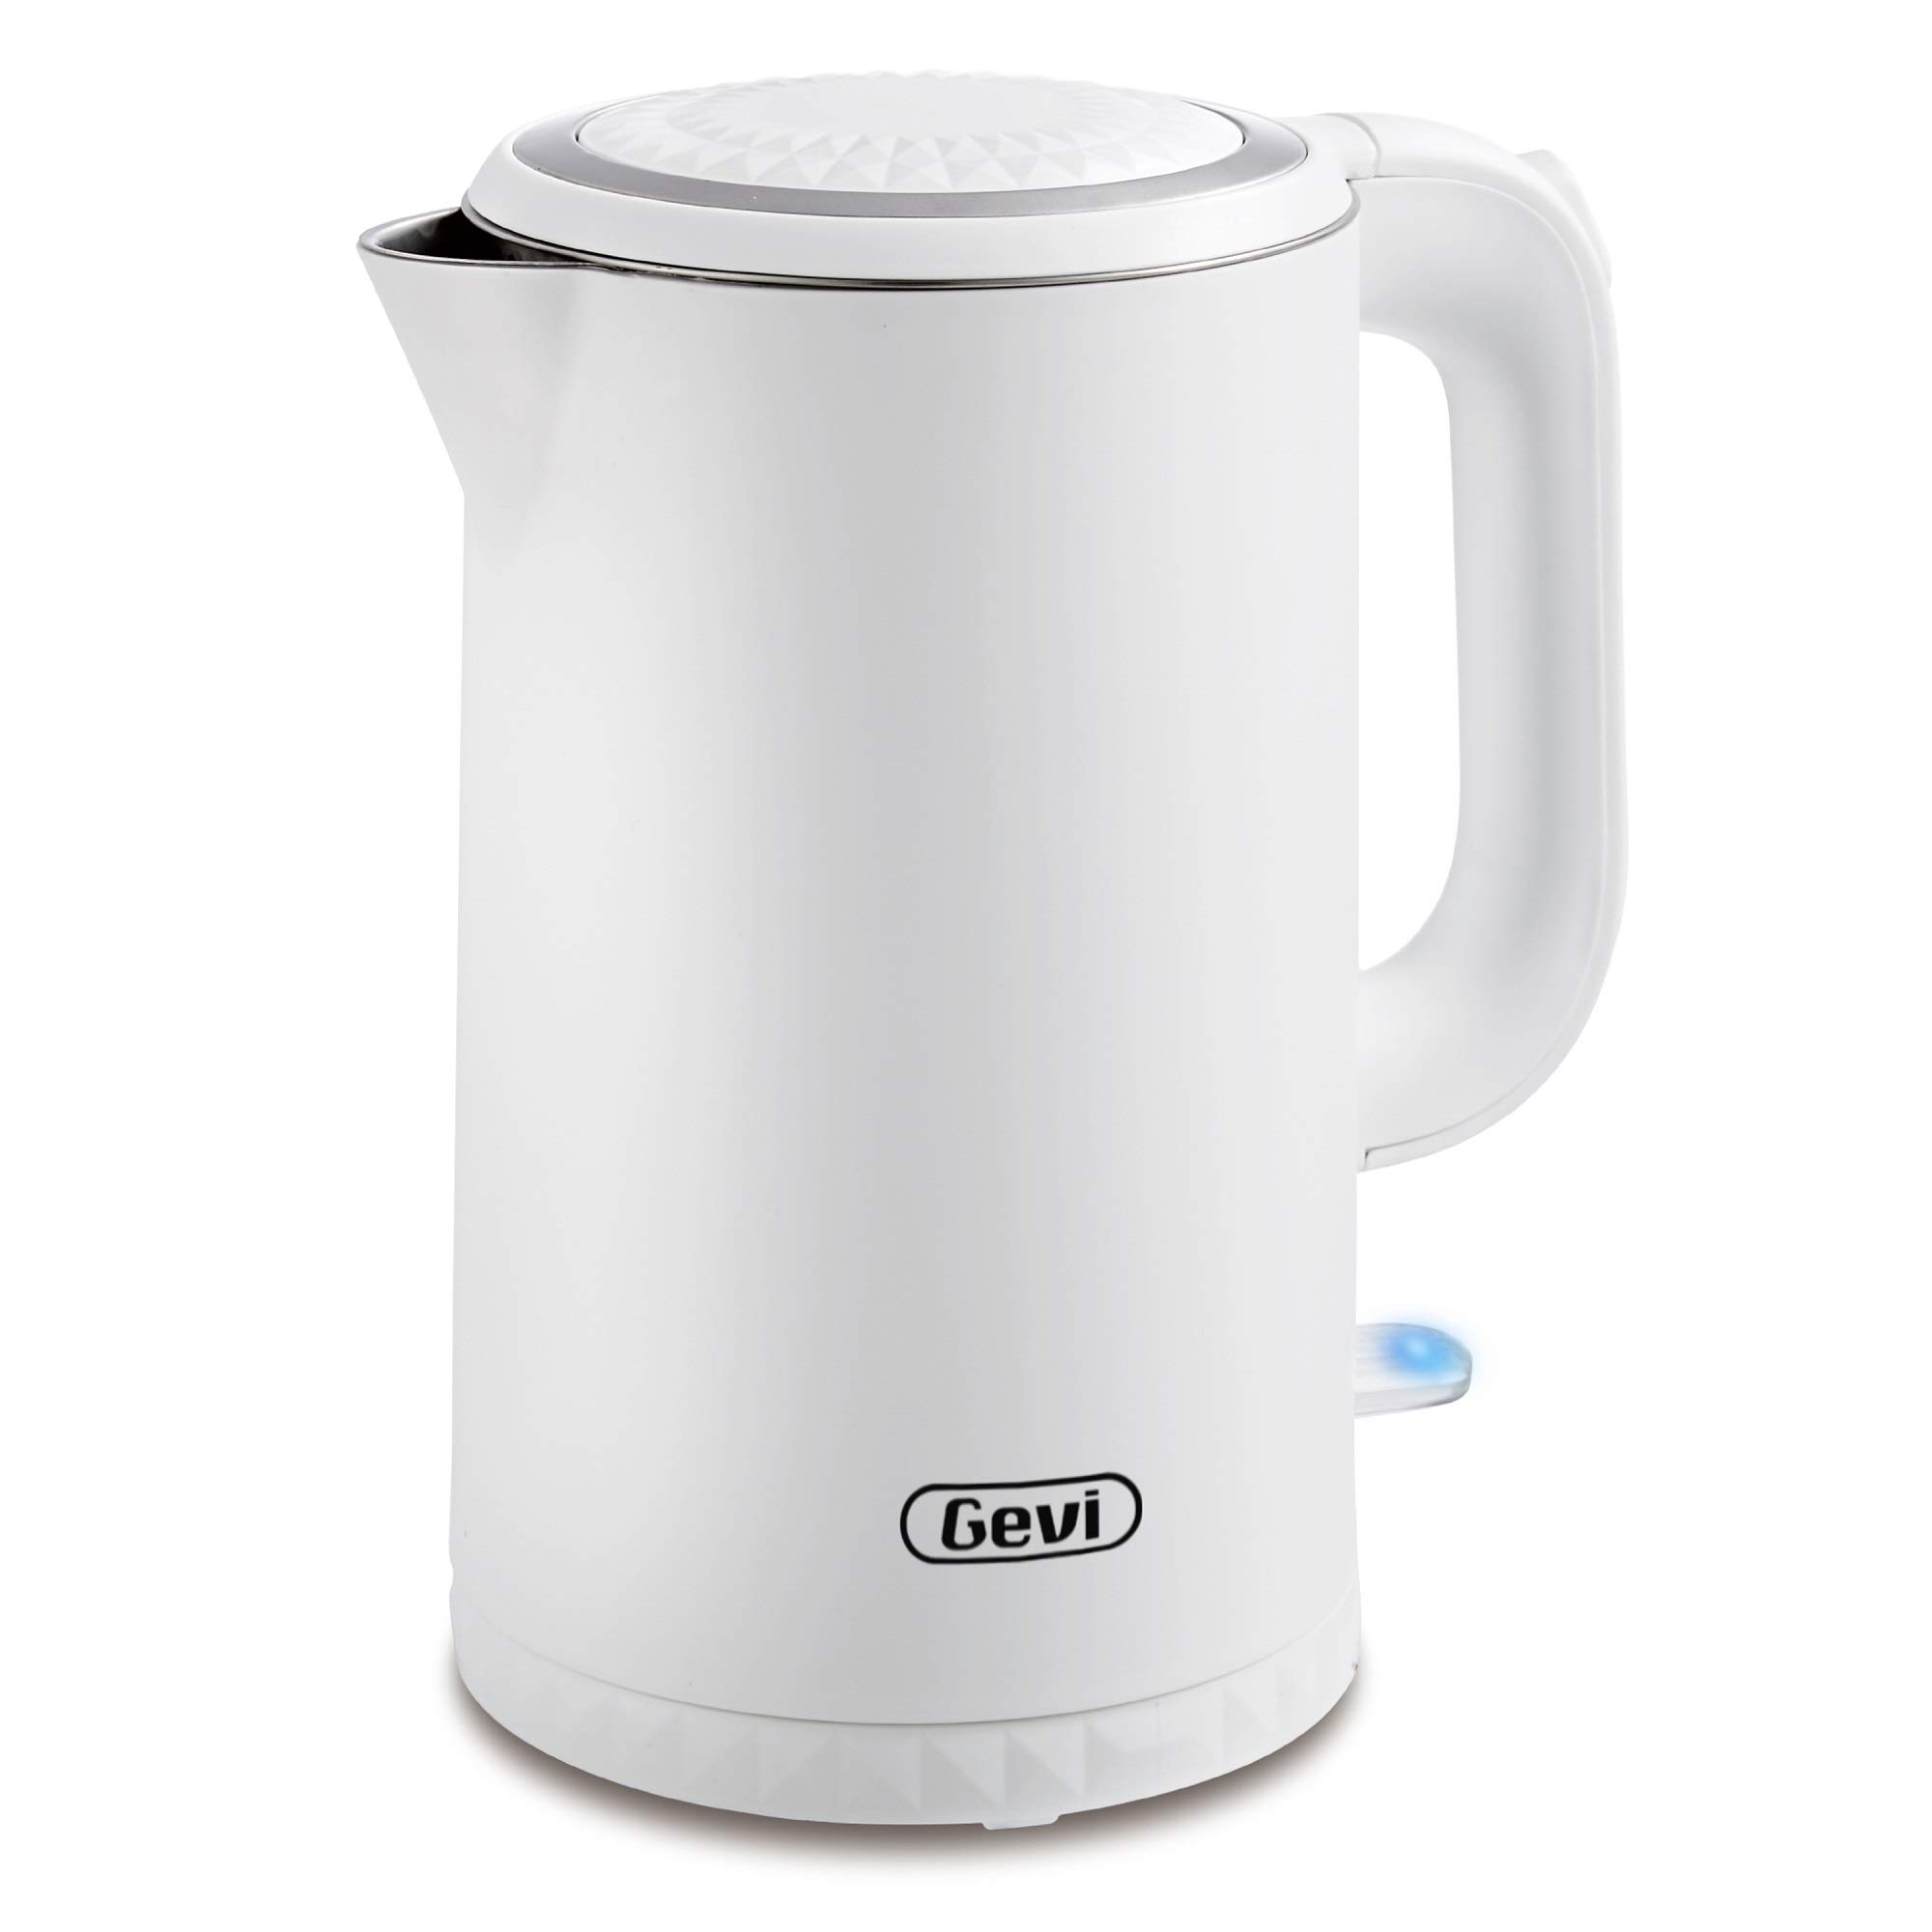 Electric Kettle, Gevi 1.7 Liter Cool Touch Double Wall Stainless Steel Cordless Tea Kettle, Hot Water Boiler with 1500W Strix Control, Metta White